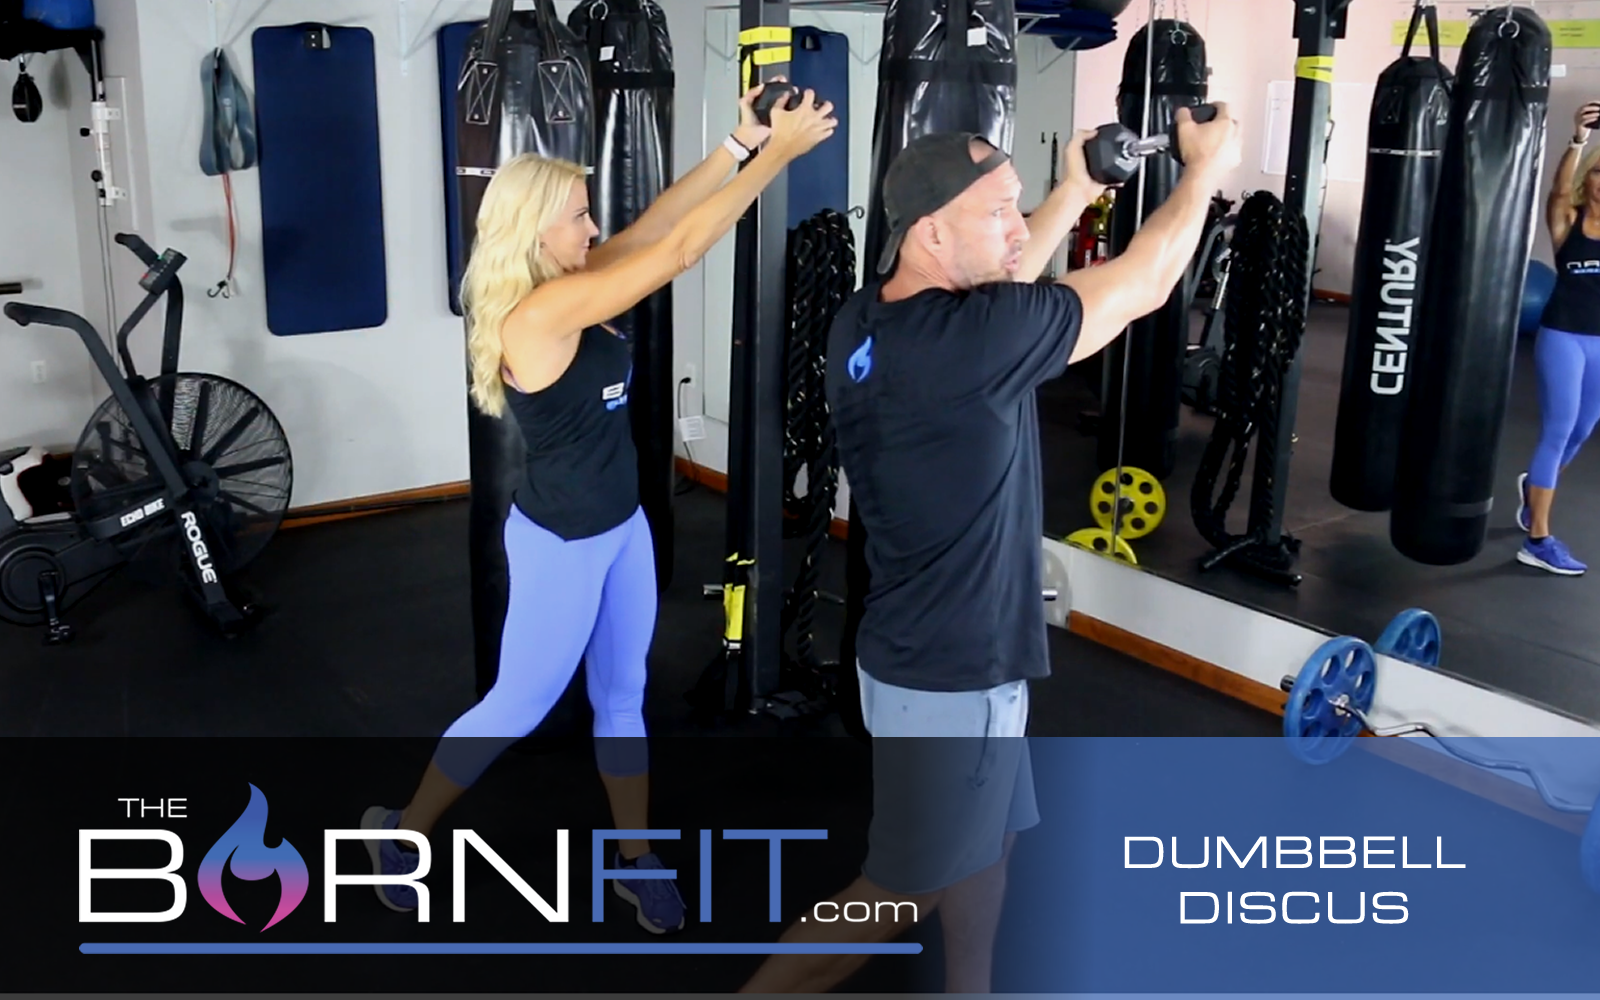 Dumbbell Discus workouts